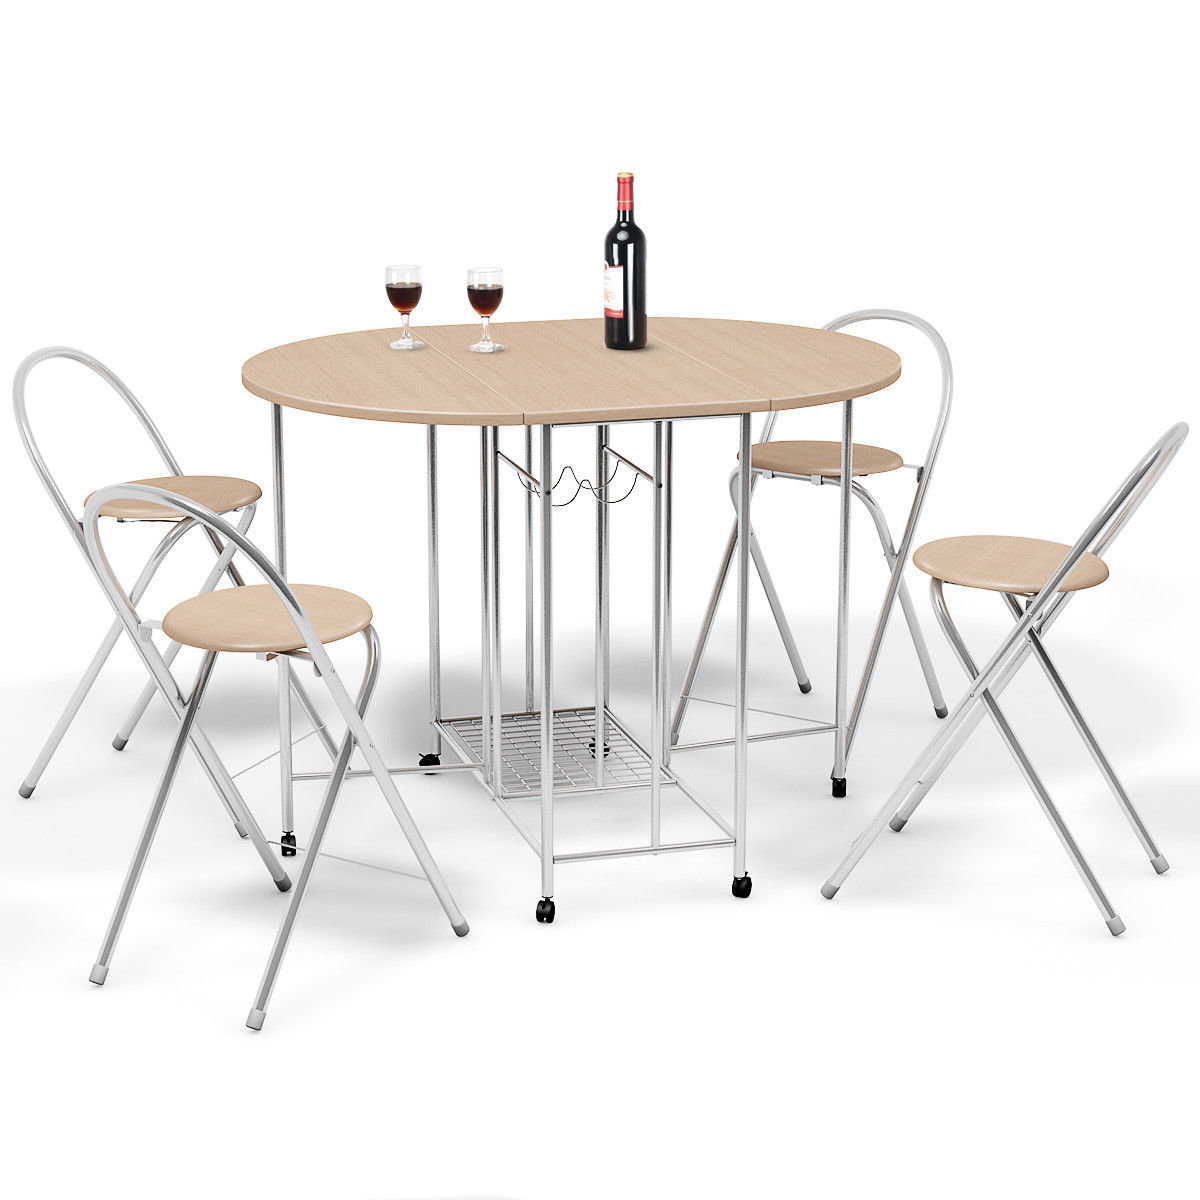 Holderman 5 Piece Counter Height Extendable Dining Set With Regard To Current Mulvey 5 Piece Dining Sets (View 16 of 20)